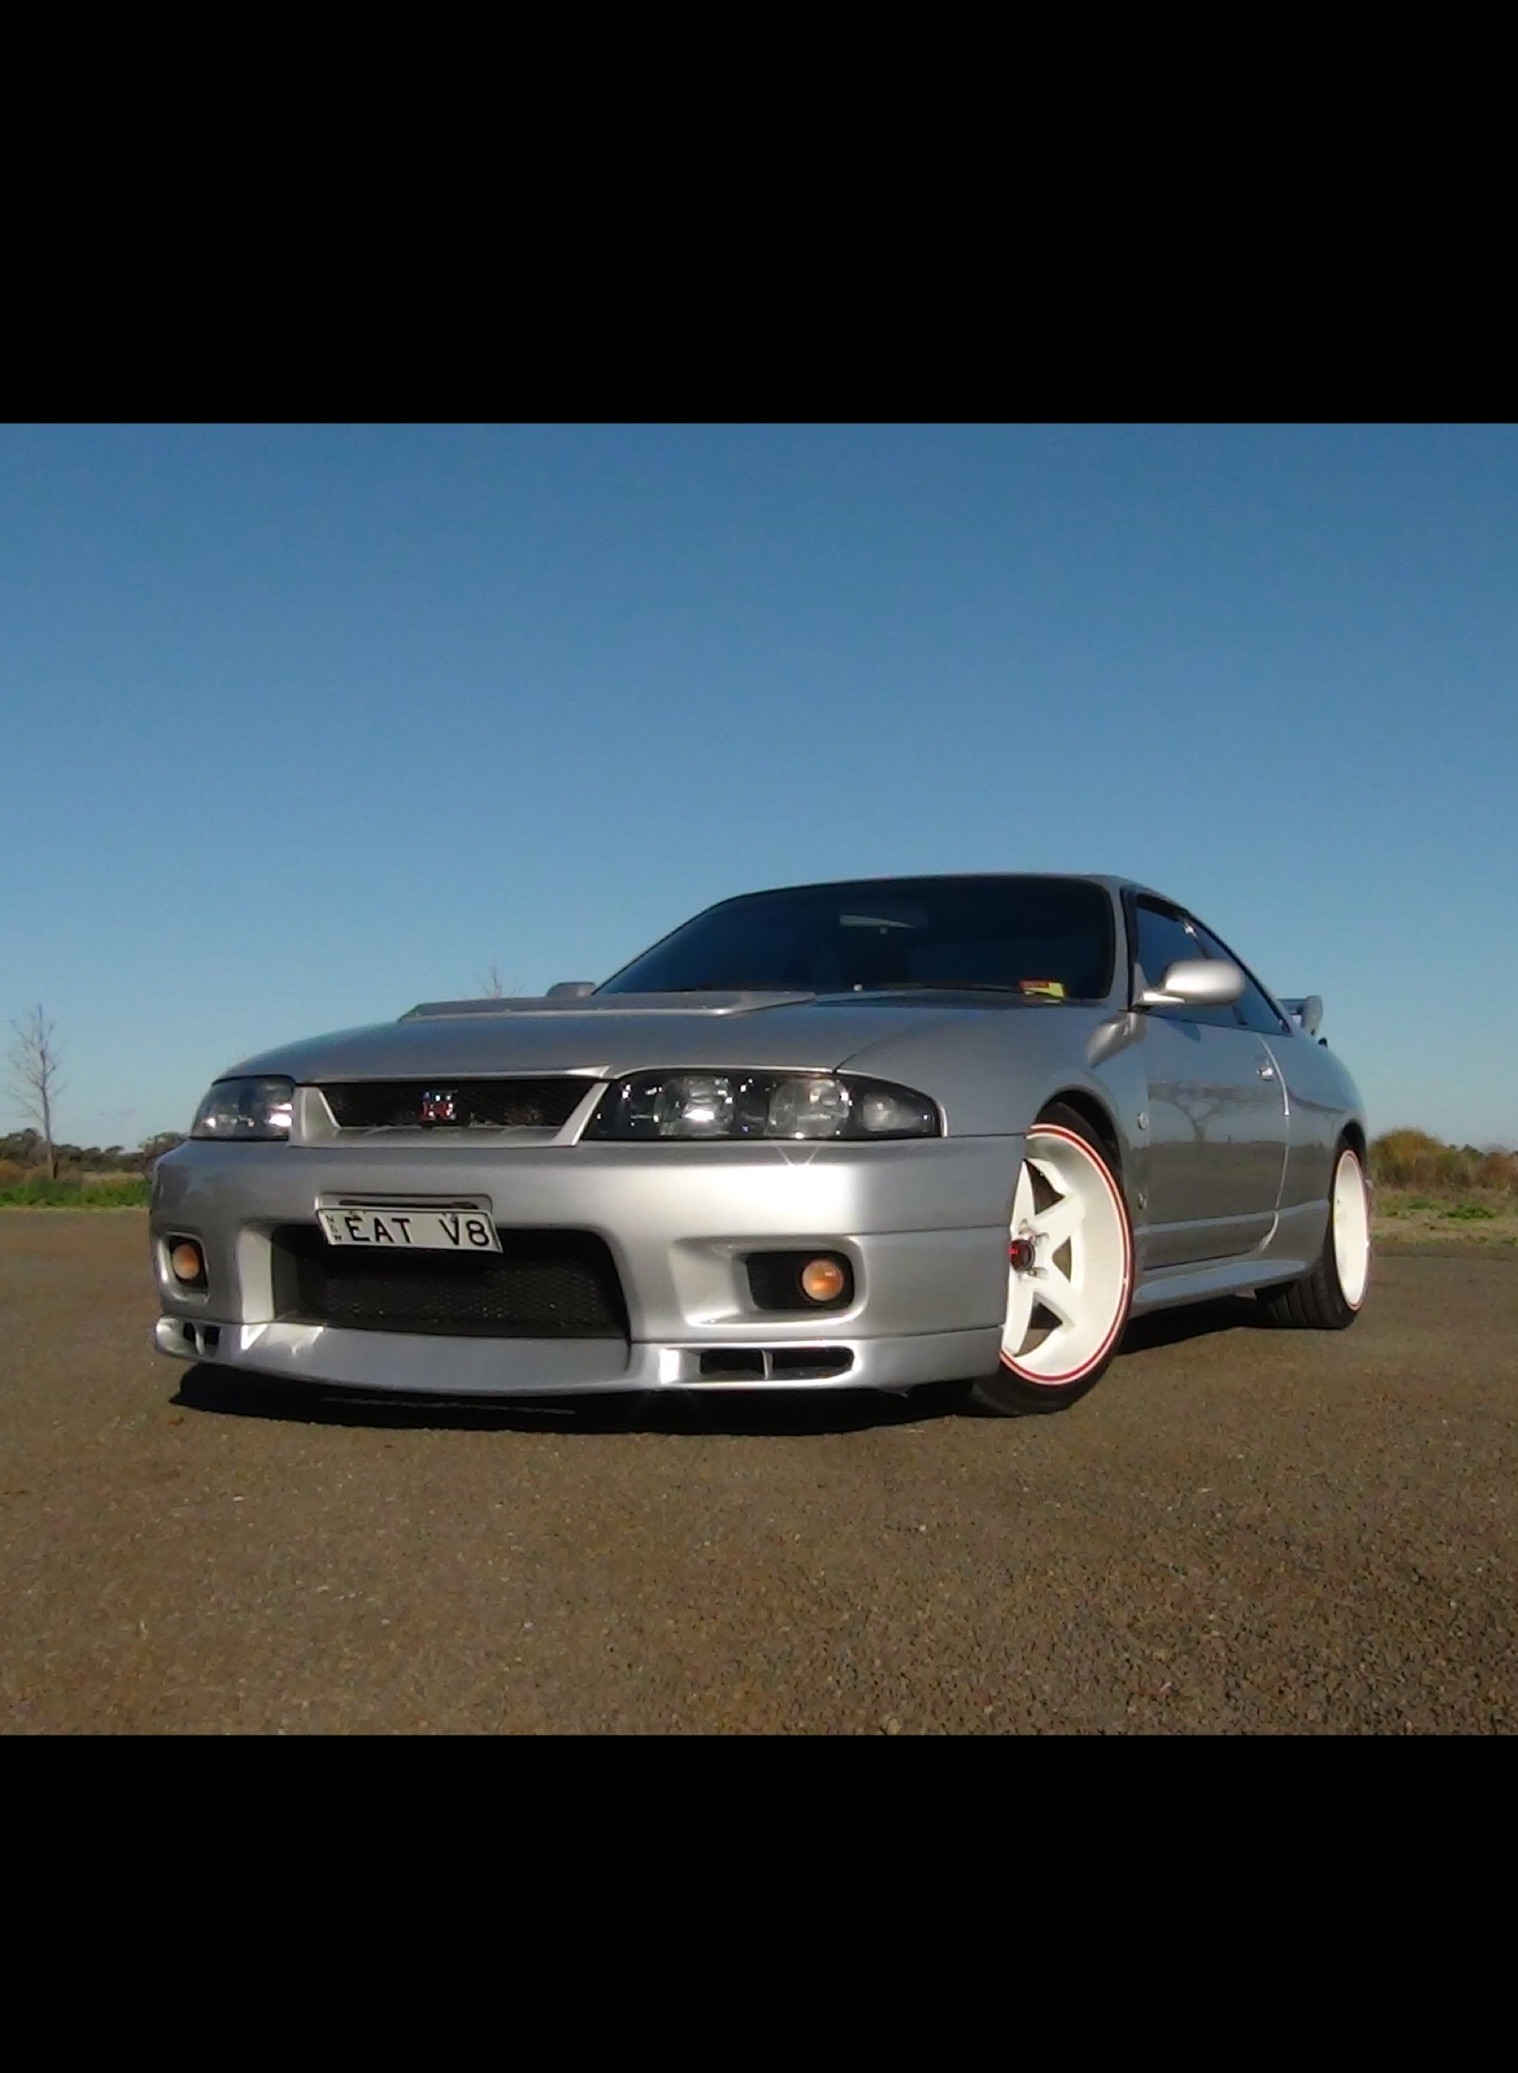 1995 nissan gt r car sales nsw south eastern 2419925. Black Bedroom Furniture Sets. Home Design Ideas